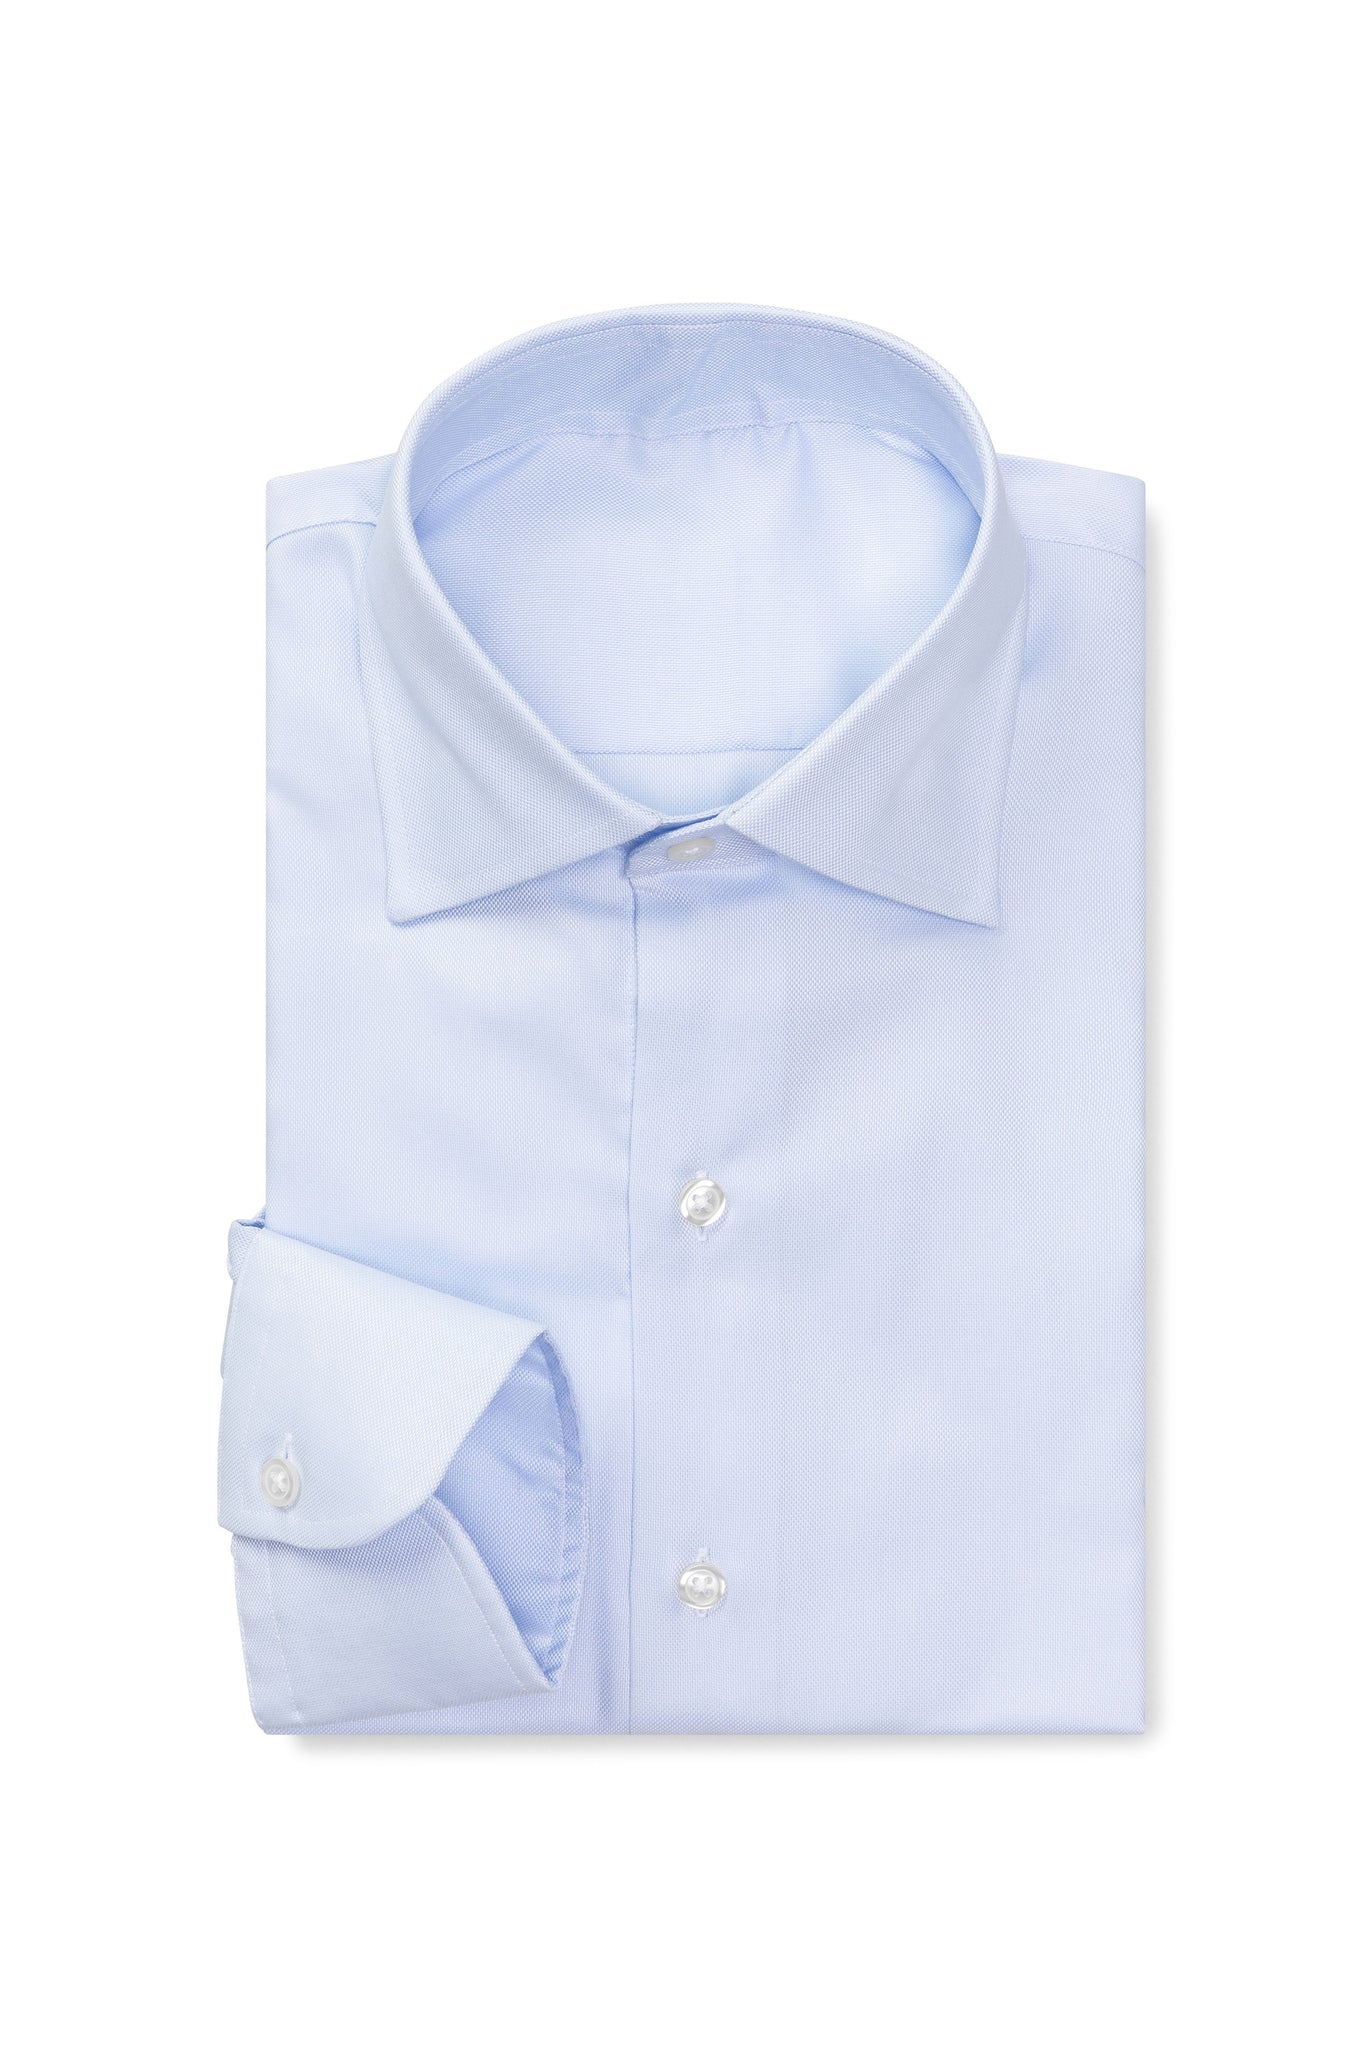 Ice Blue Royal Oxford Made to Order Shirt